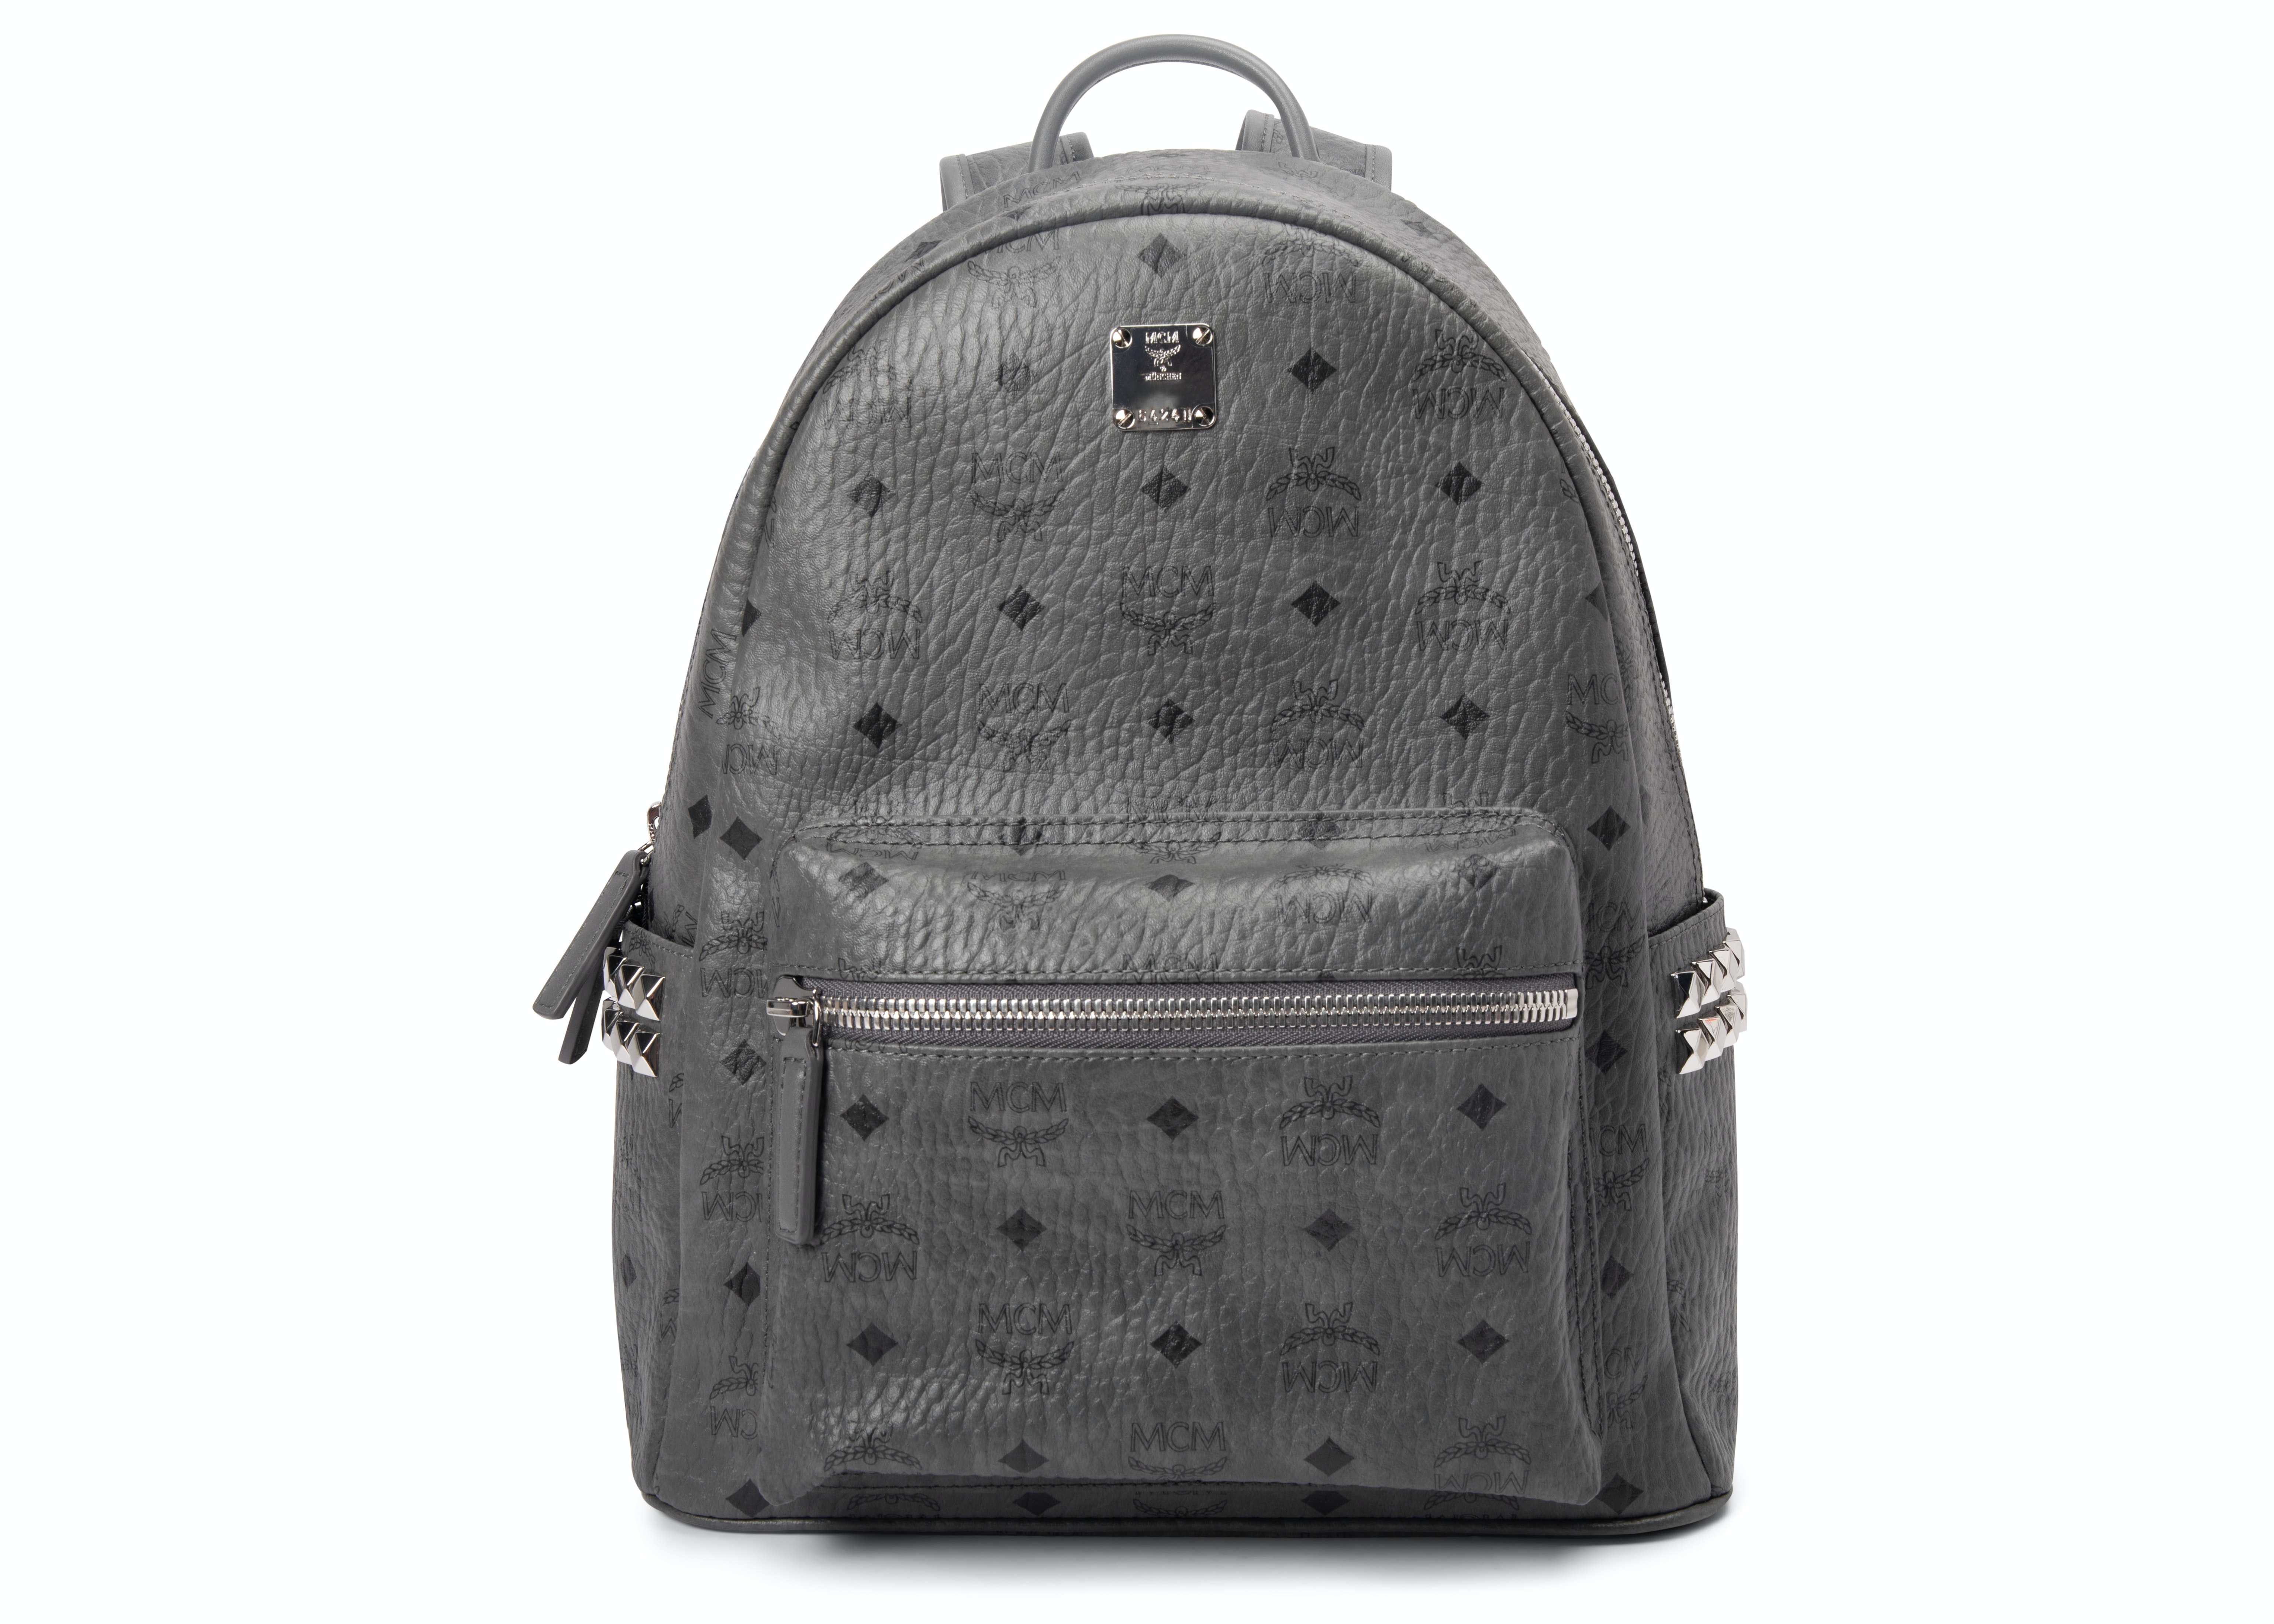 MCM Stark Backpack Visetos Side Studs Small/Medium Phantom Grey